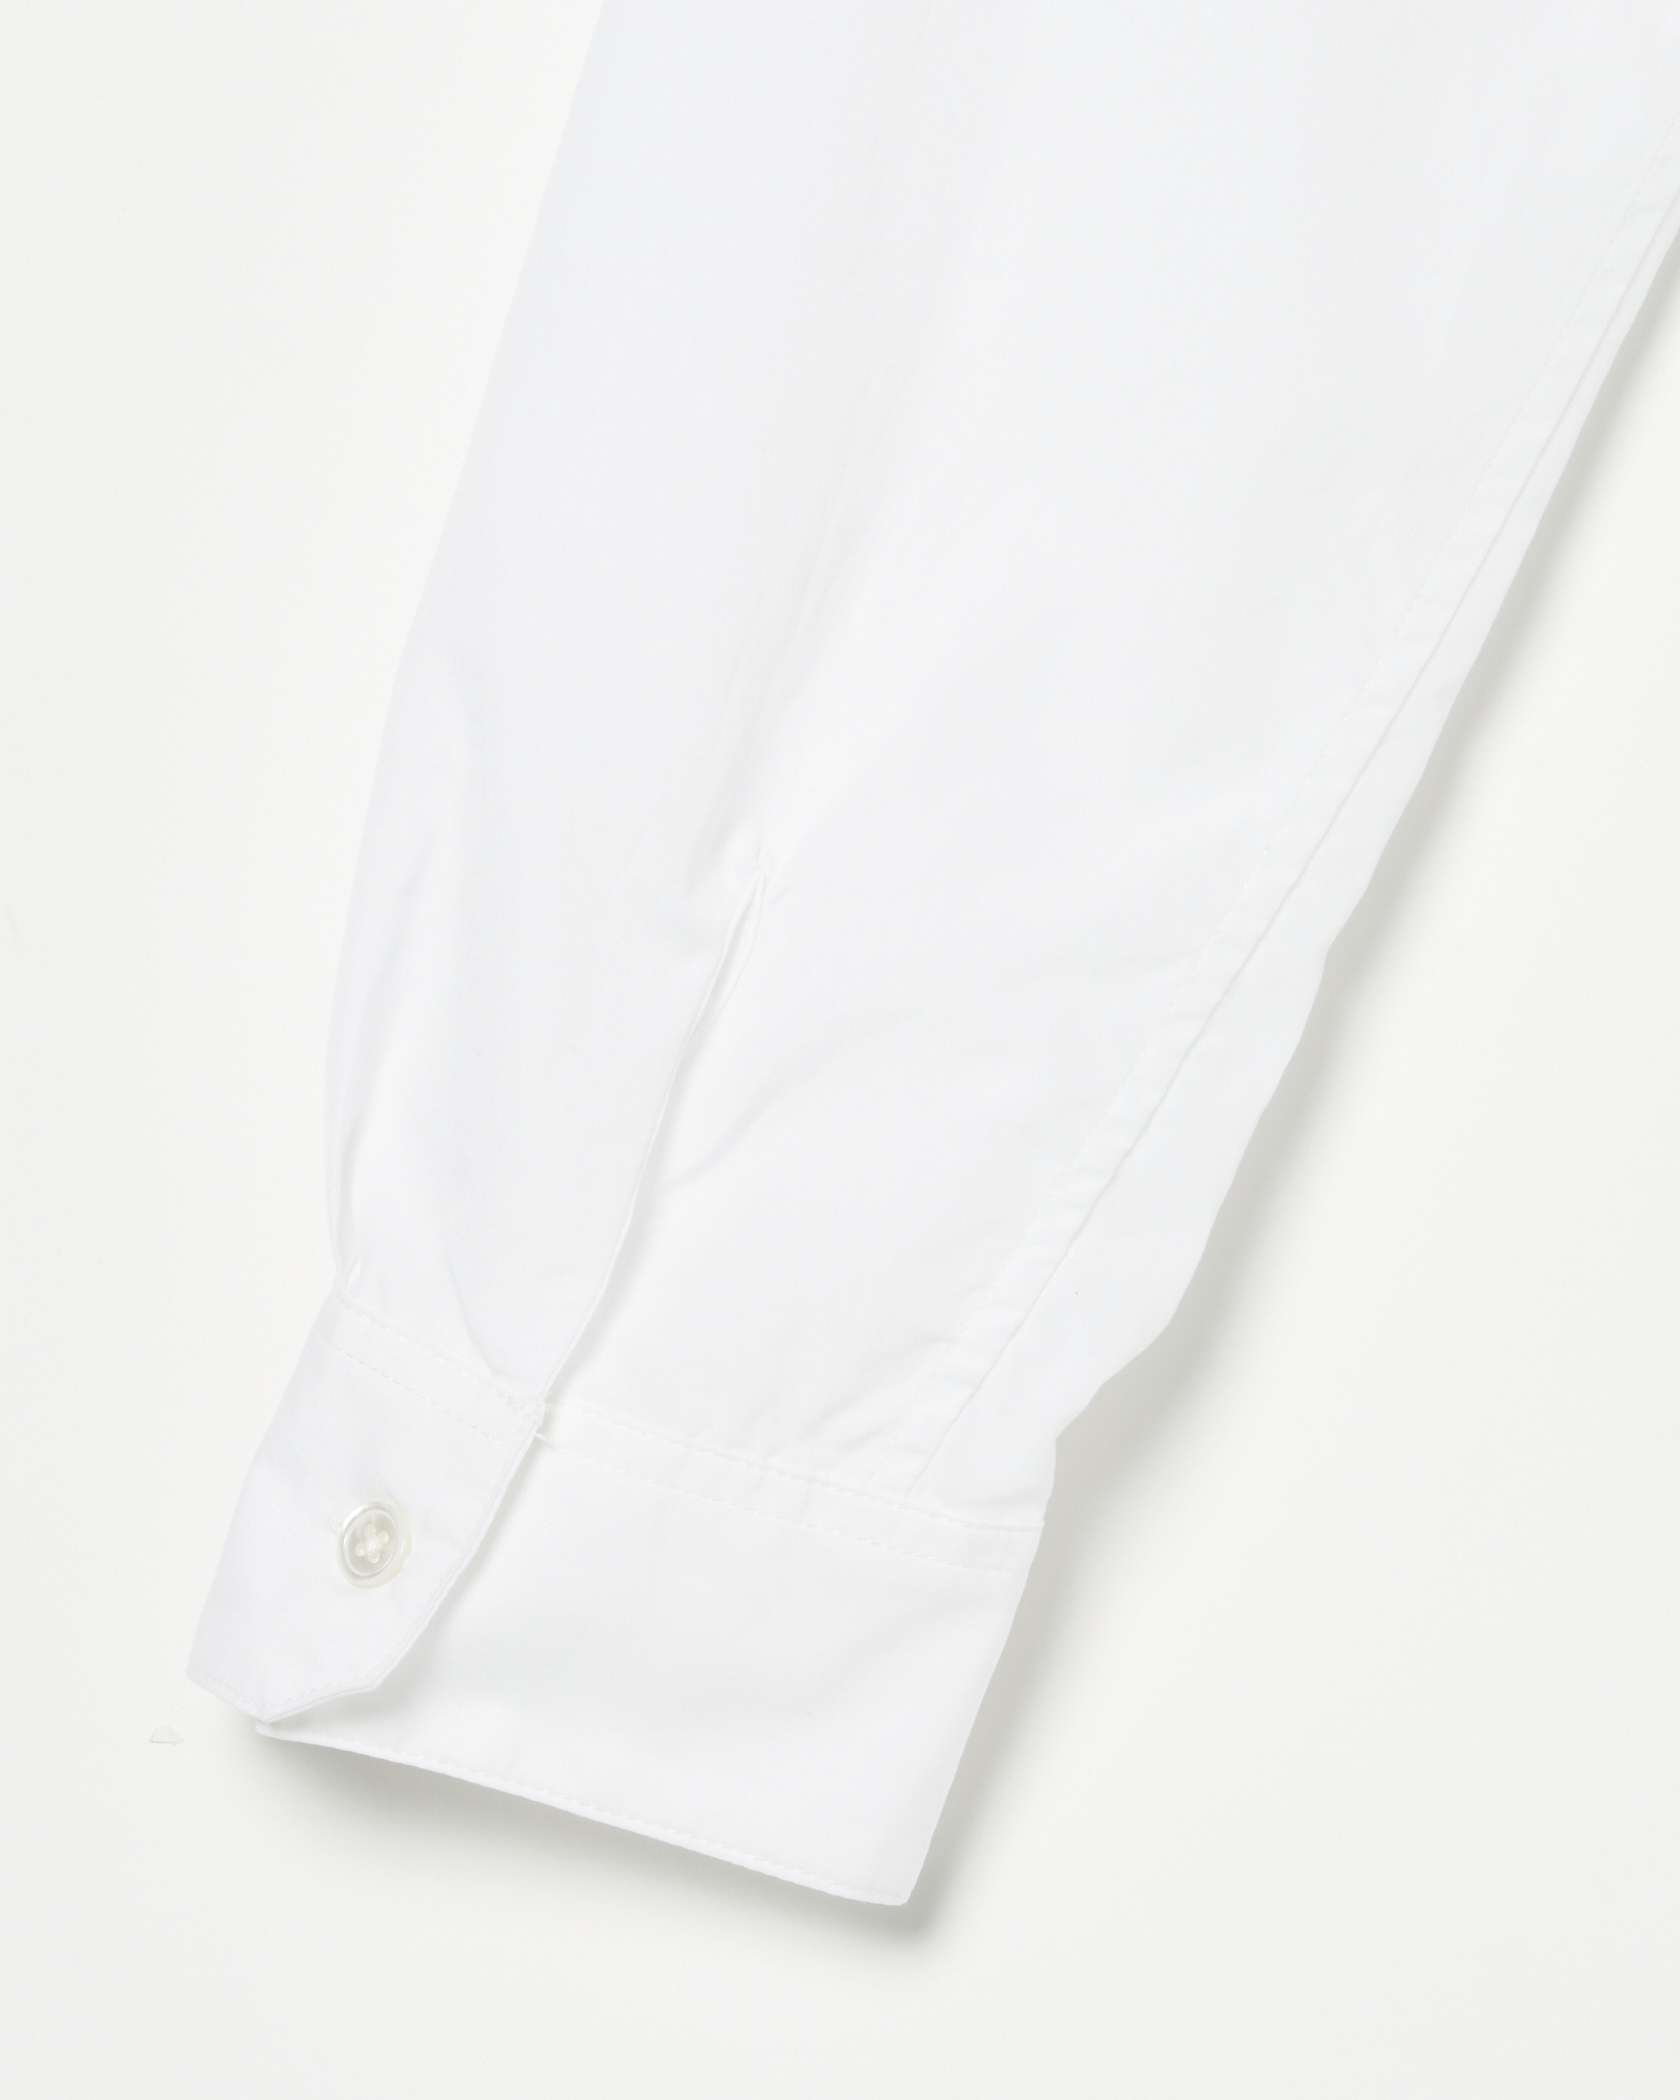 THOMAS BROAD SHIRT 詳細画像 Beige 13